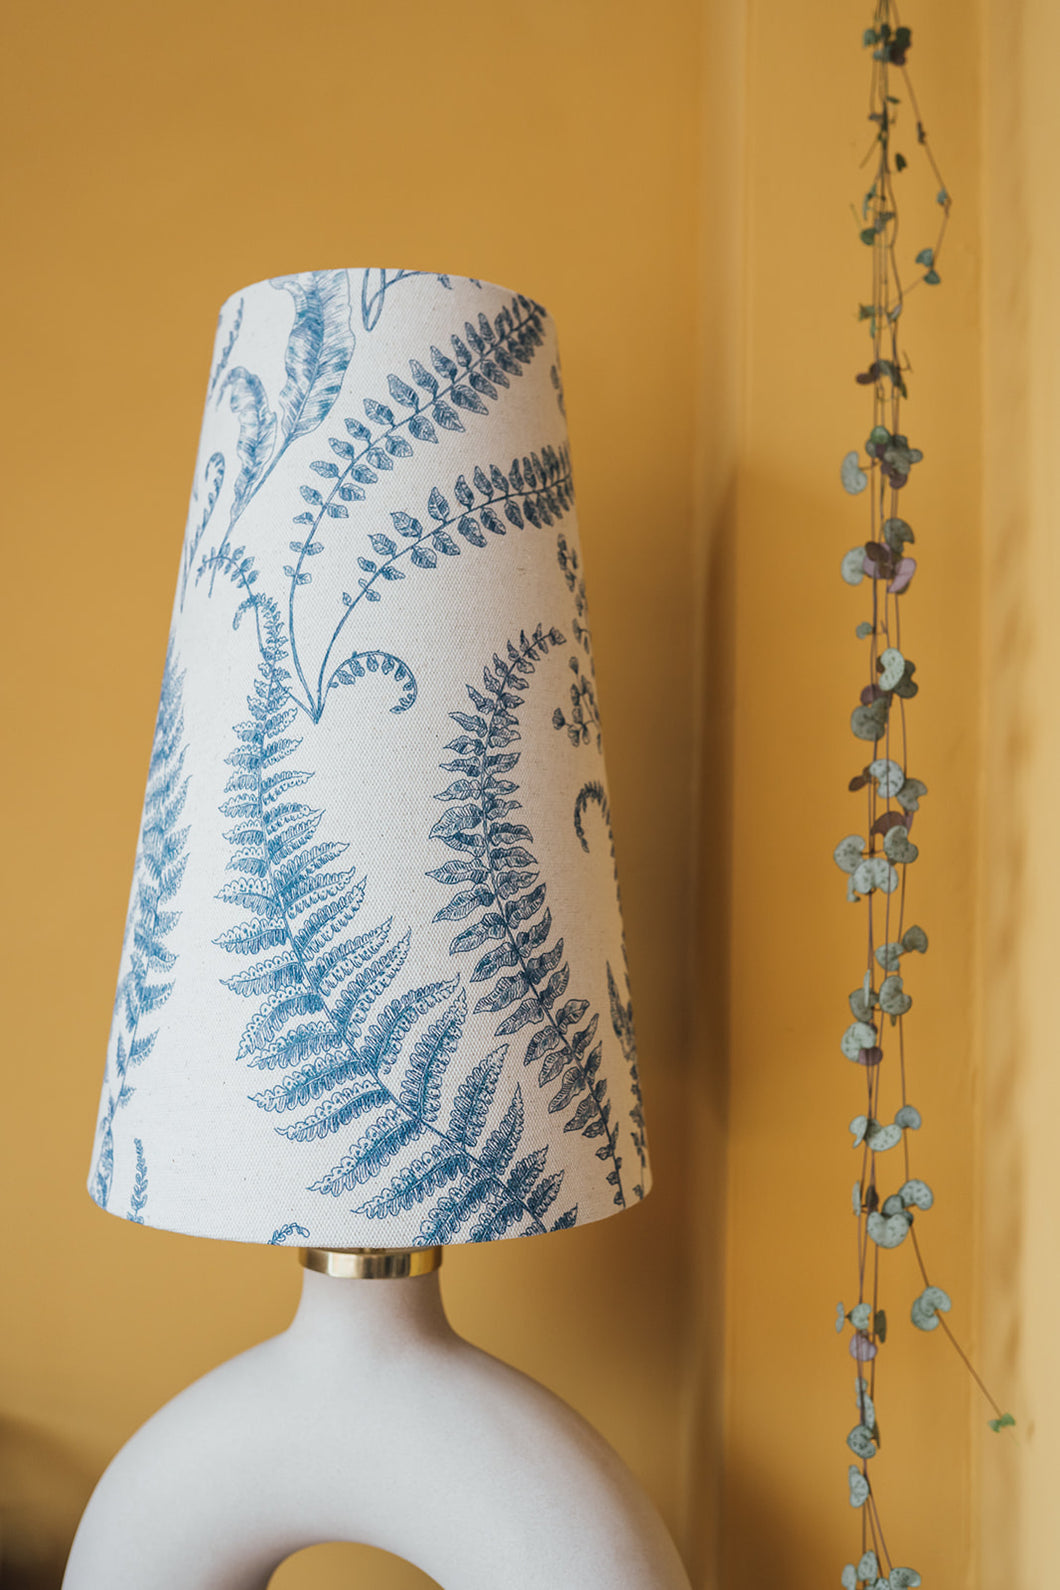 Fern print cone lampshade